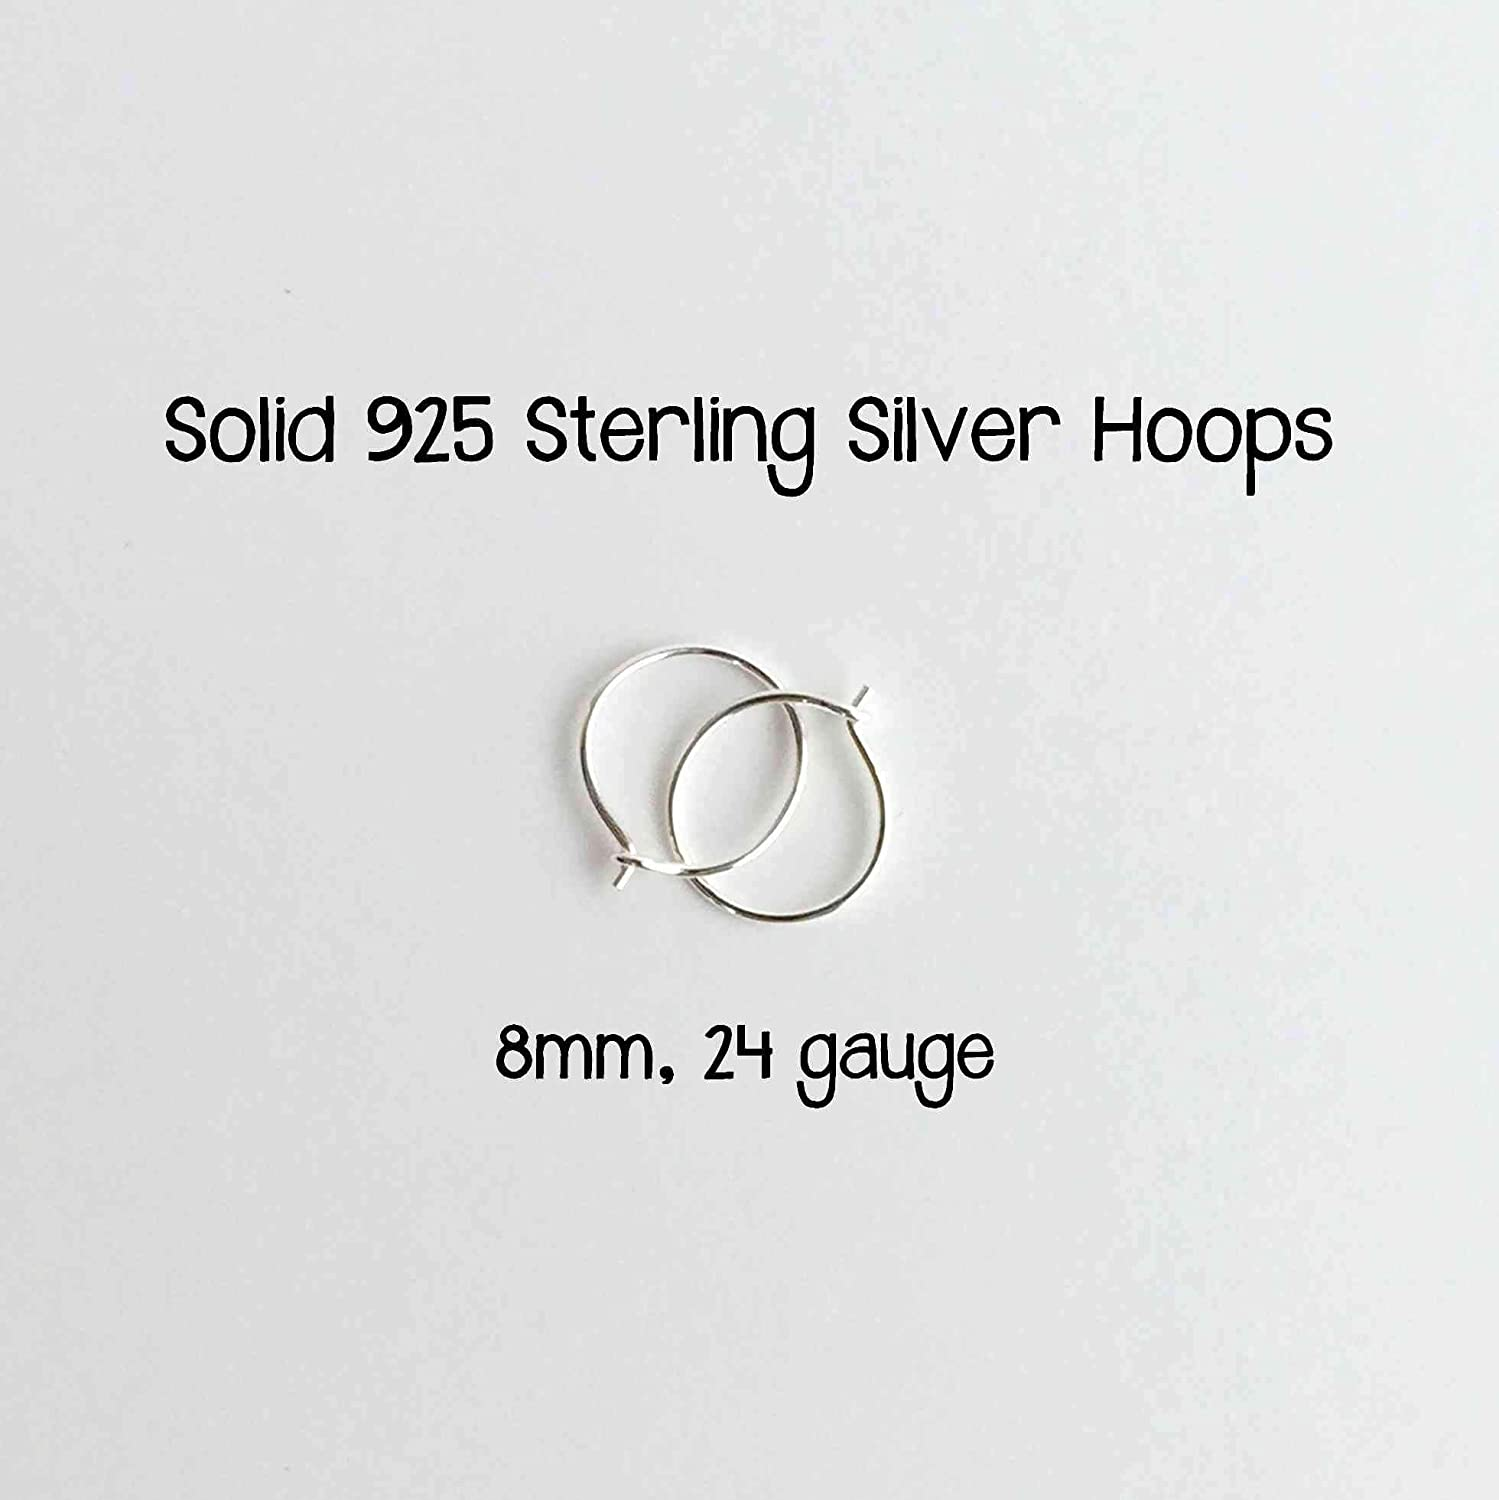 Mini Sterling Silver Hoops 8mm 24 Gauge (Extra Thin Hoops)